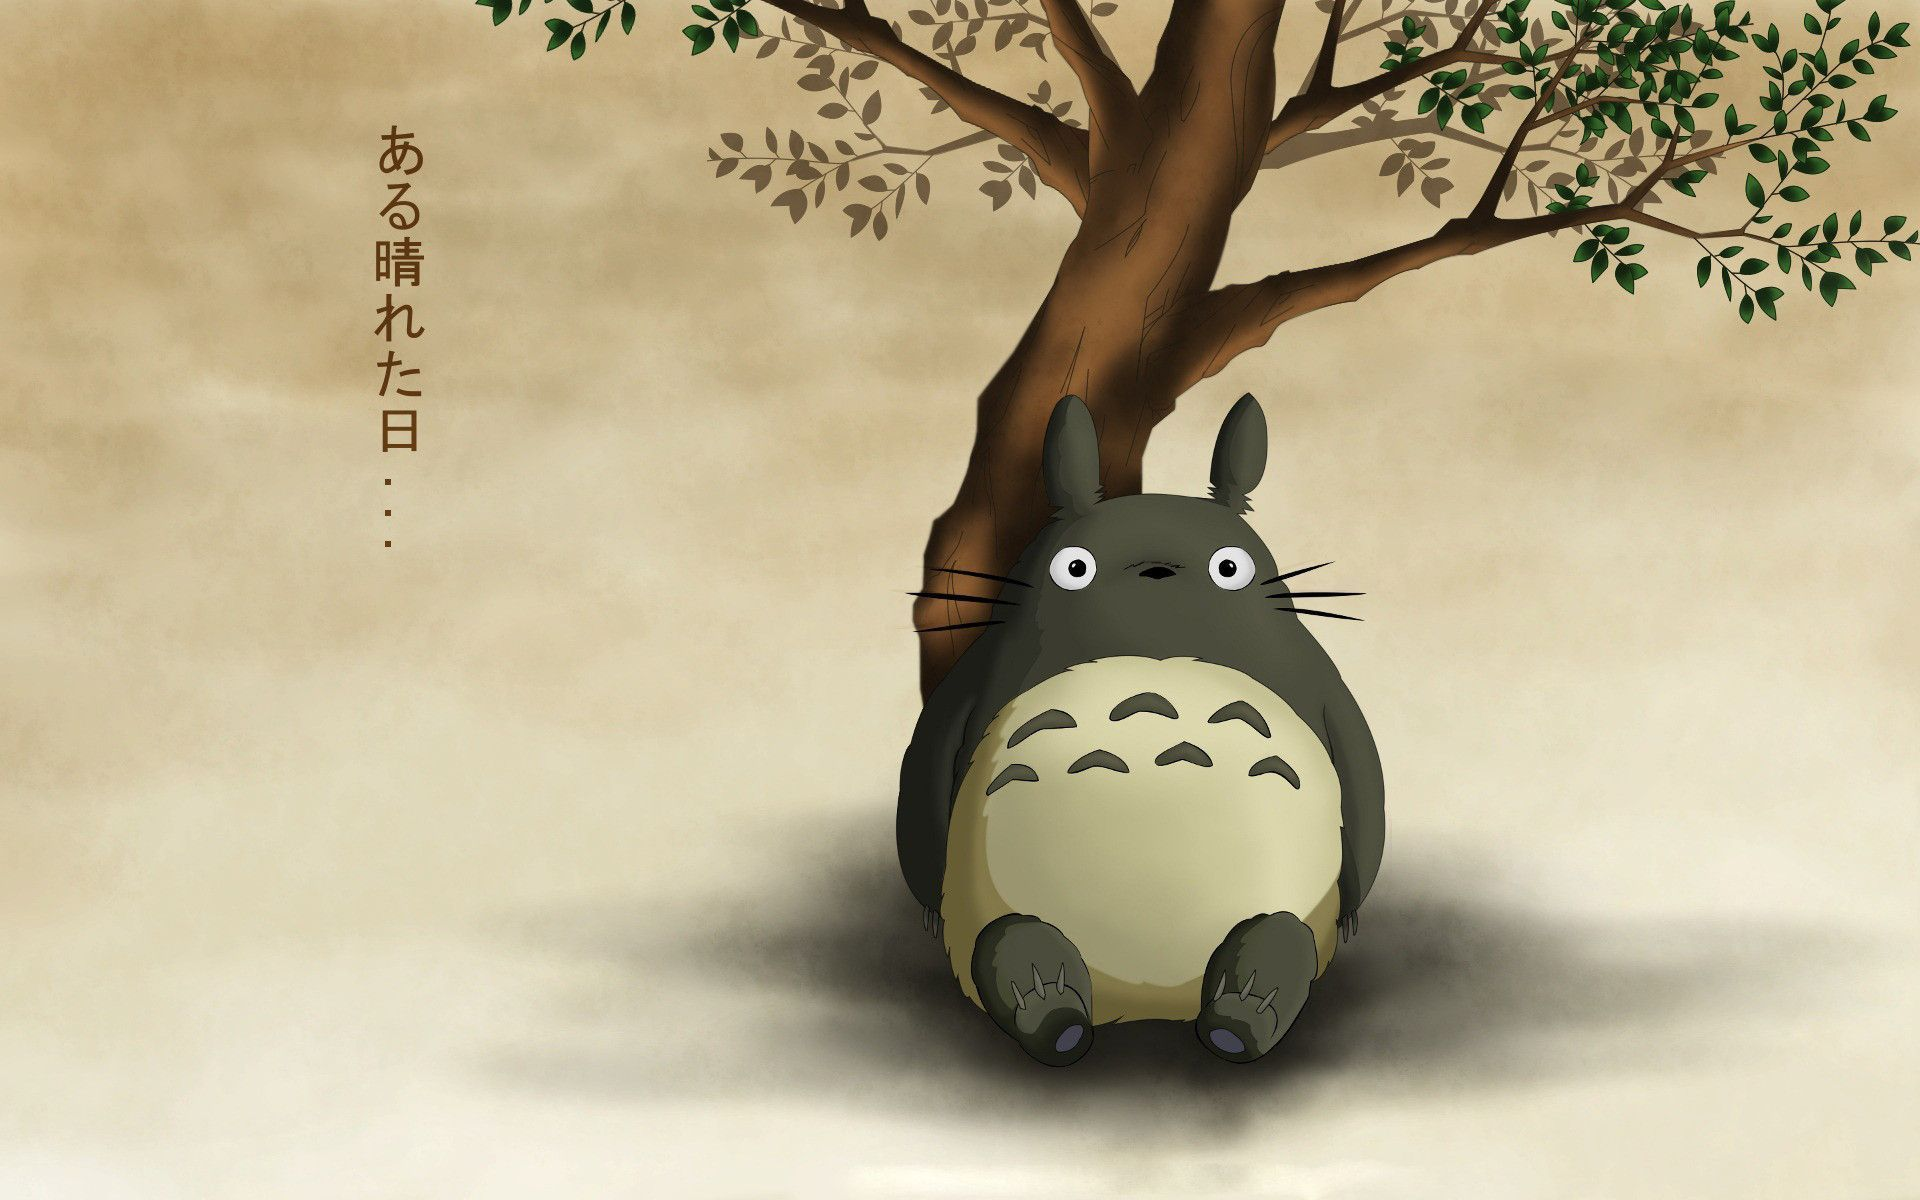 Totoro Wallpapers HD - Wallpaper Cave | Free Wallpapers | Pinterest